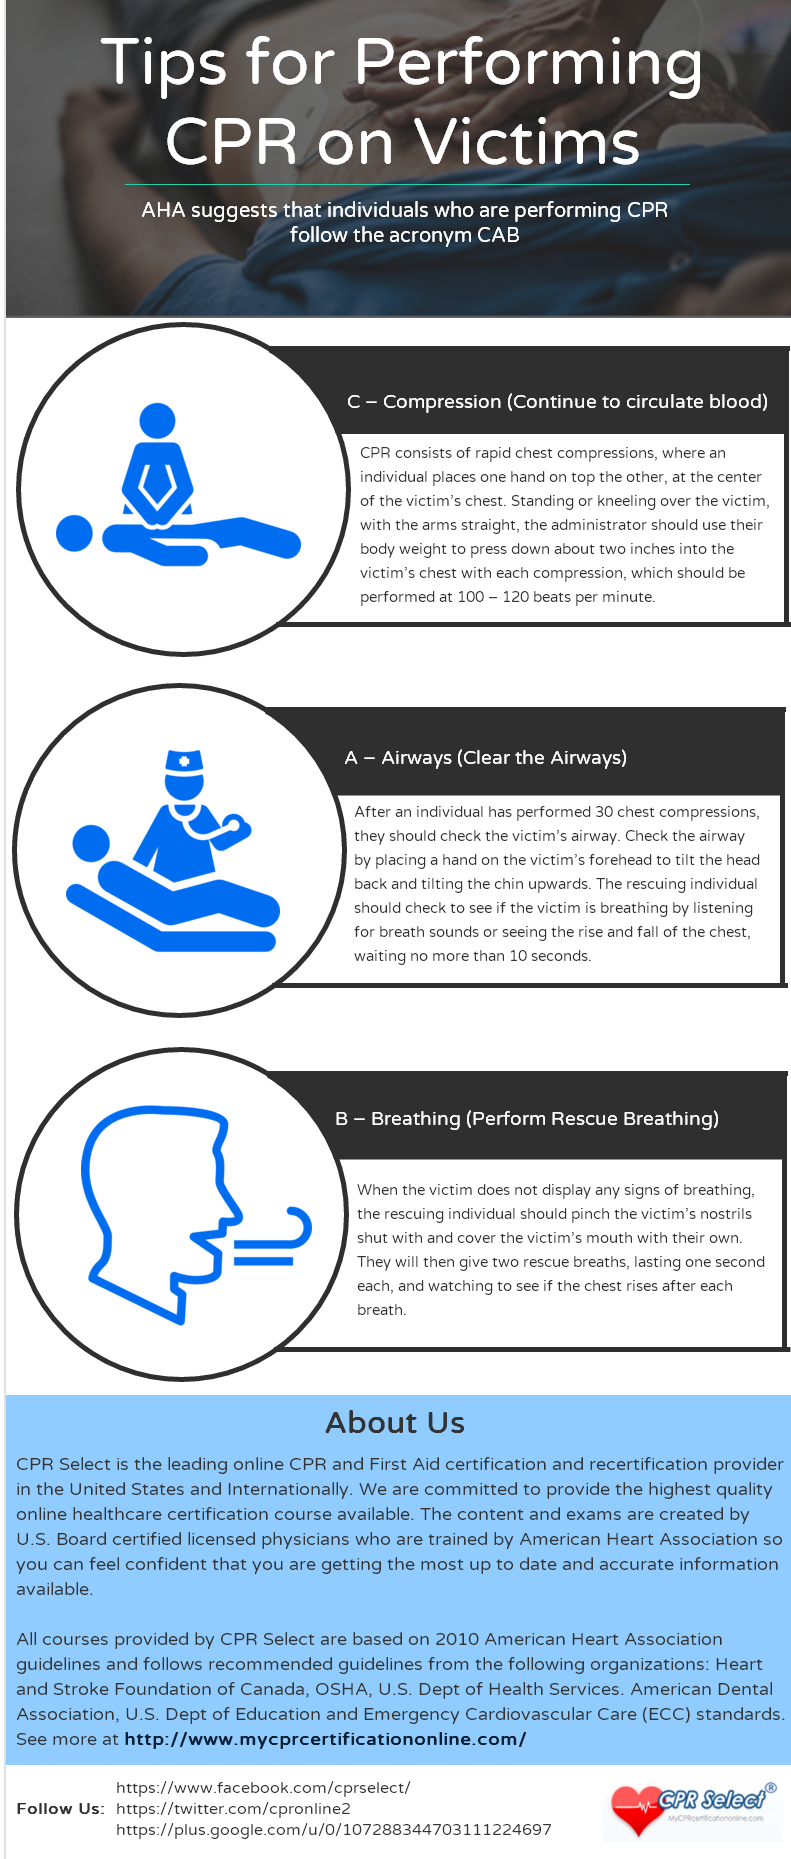 Tips for performing cpr on victims bruse rockwell medium to know more about cpr training and first aid certification course visit cpr select 1betcityfo Images